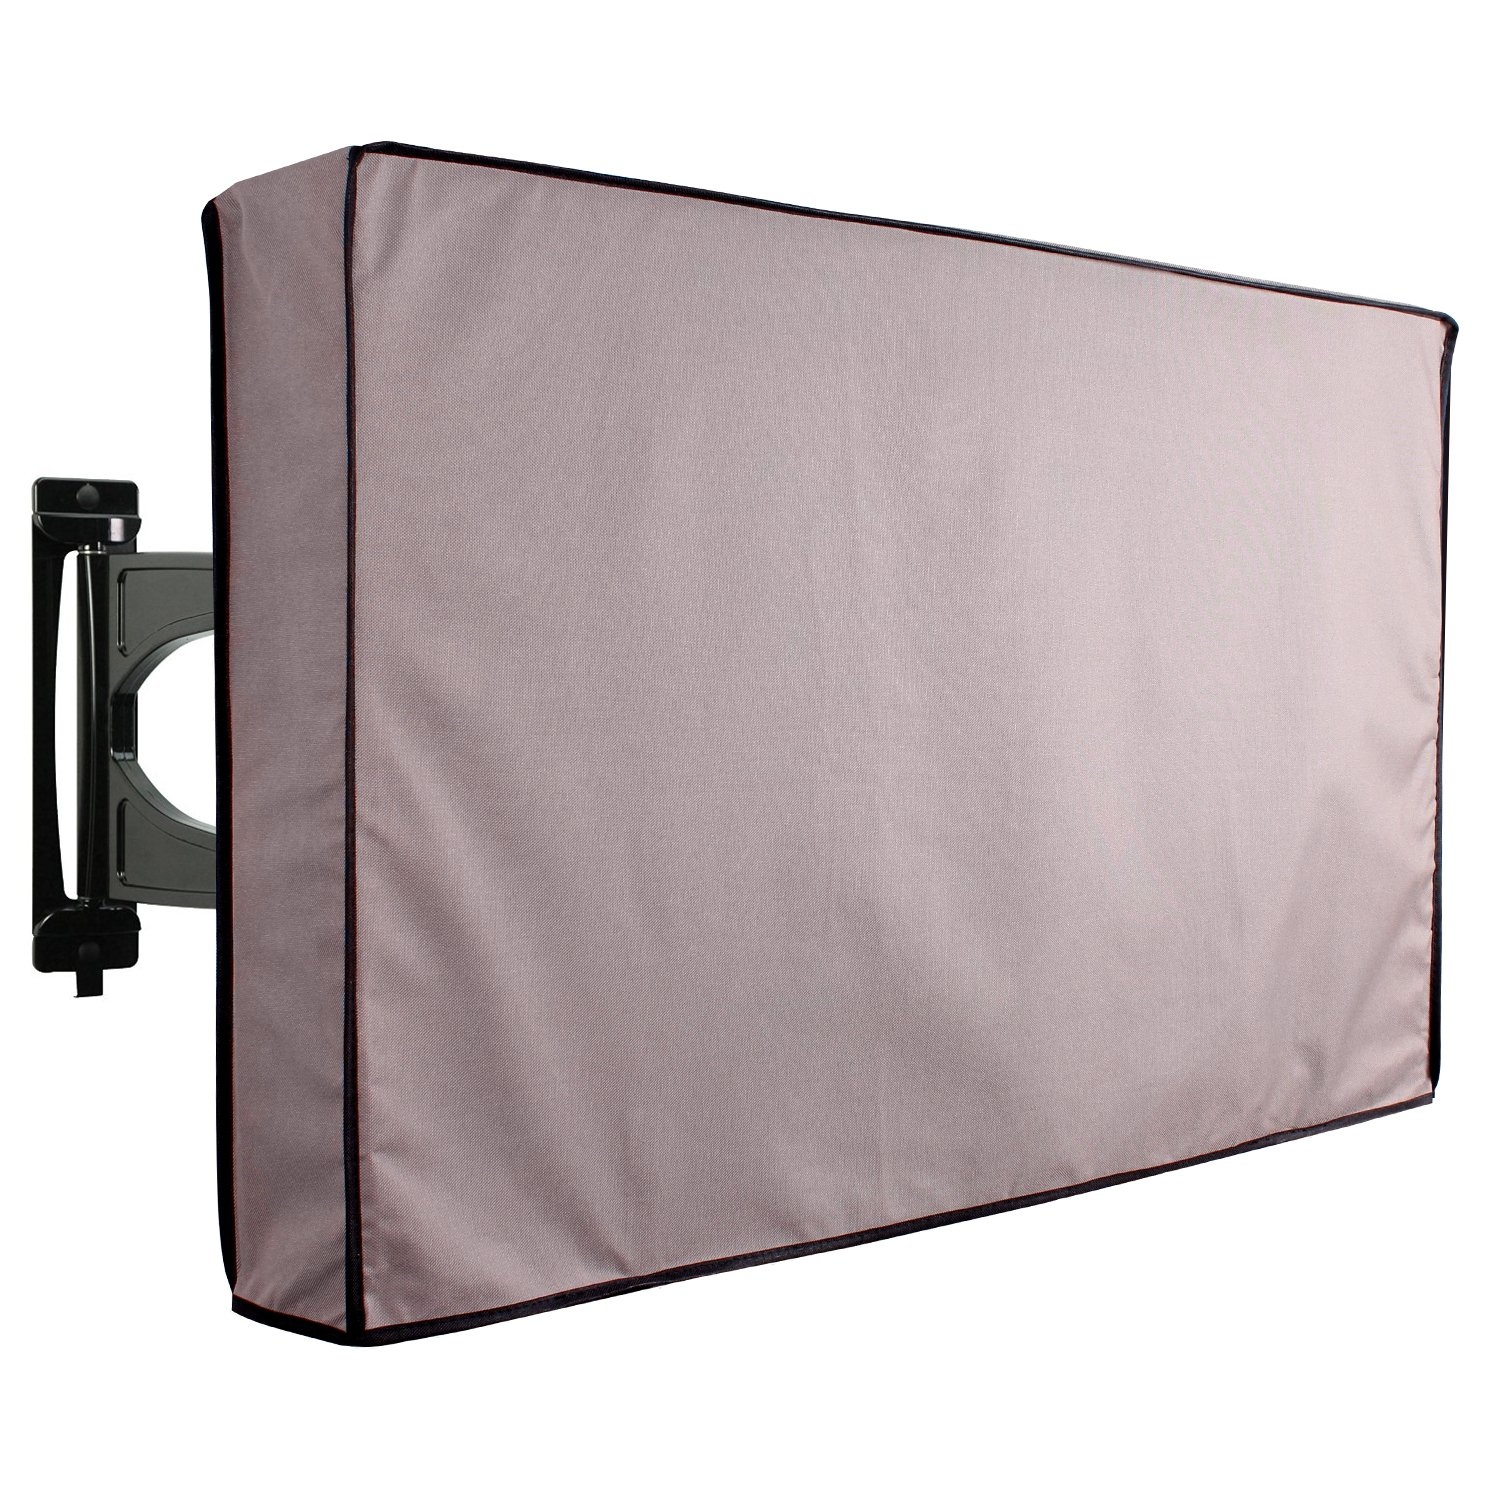 Outdoor TV Cover, Black Weatherproof Universal Protector for 40'' - 42'' LCD, LED, Plasma Television Sets - Compatible with Standard Mounts and Stands. Built In Remote Controller Storage Pocket KHOMO GEAR VC-tv-cover-40-Black